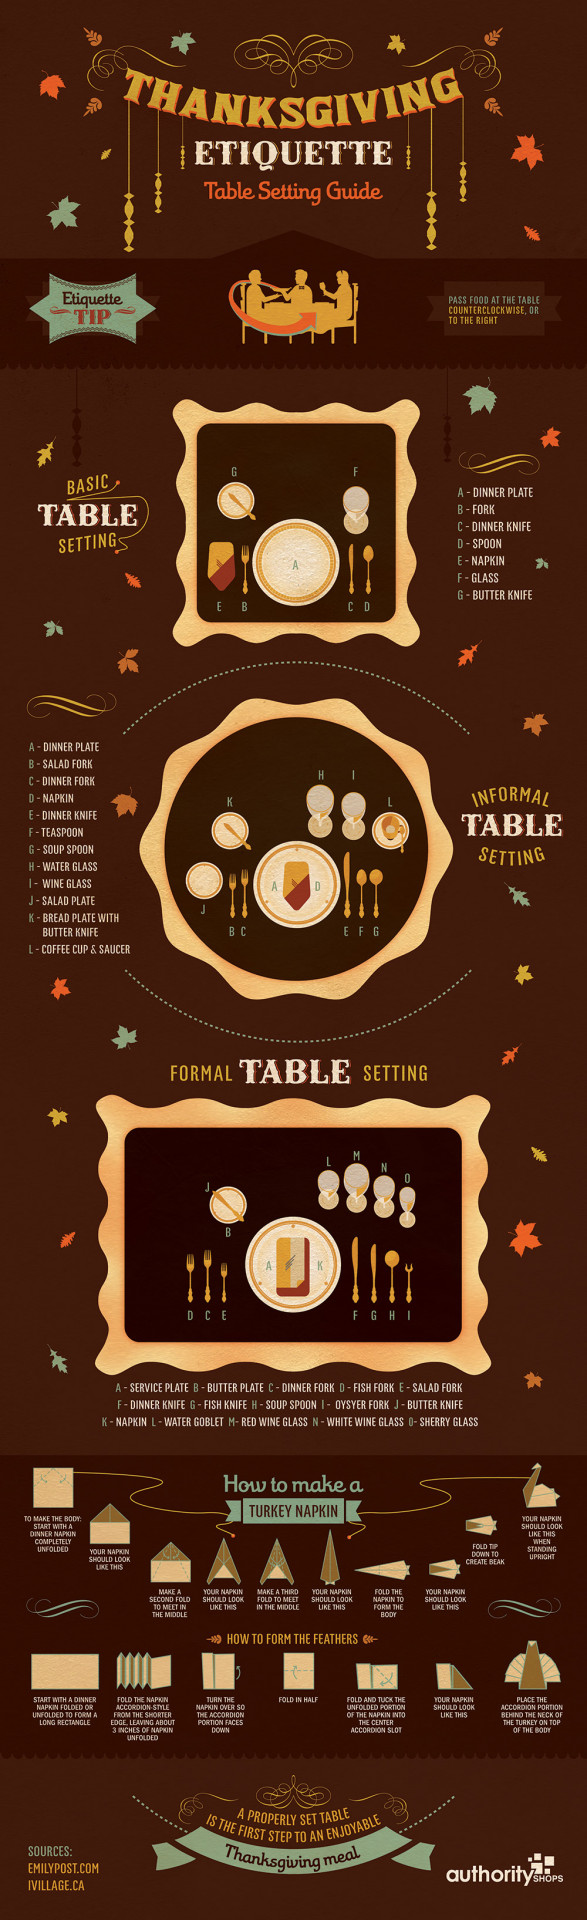 Thanksgiving Etiquette & Table Setting Etiquette: Taking the Guesswork Out of Your ...